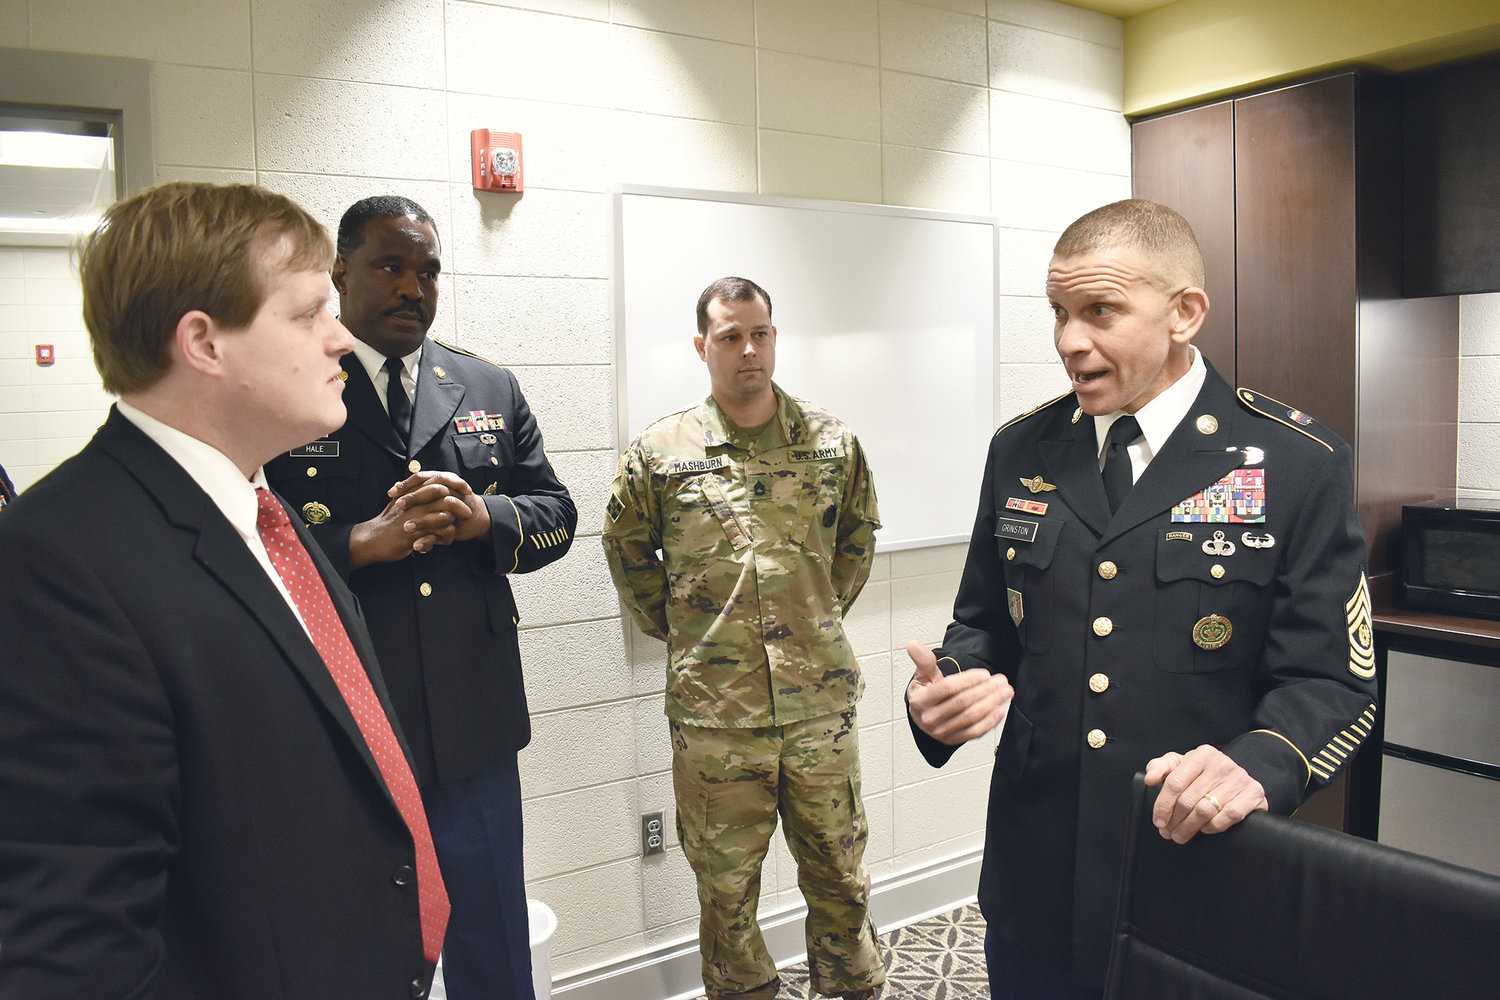 Walker High grad rises to high Army rank | Daily Mountain Eagle